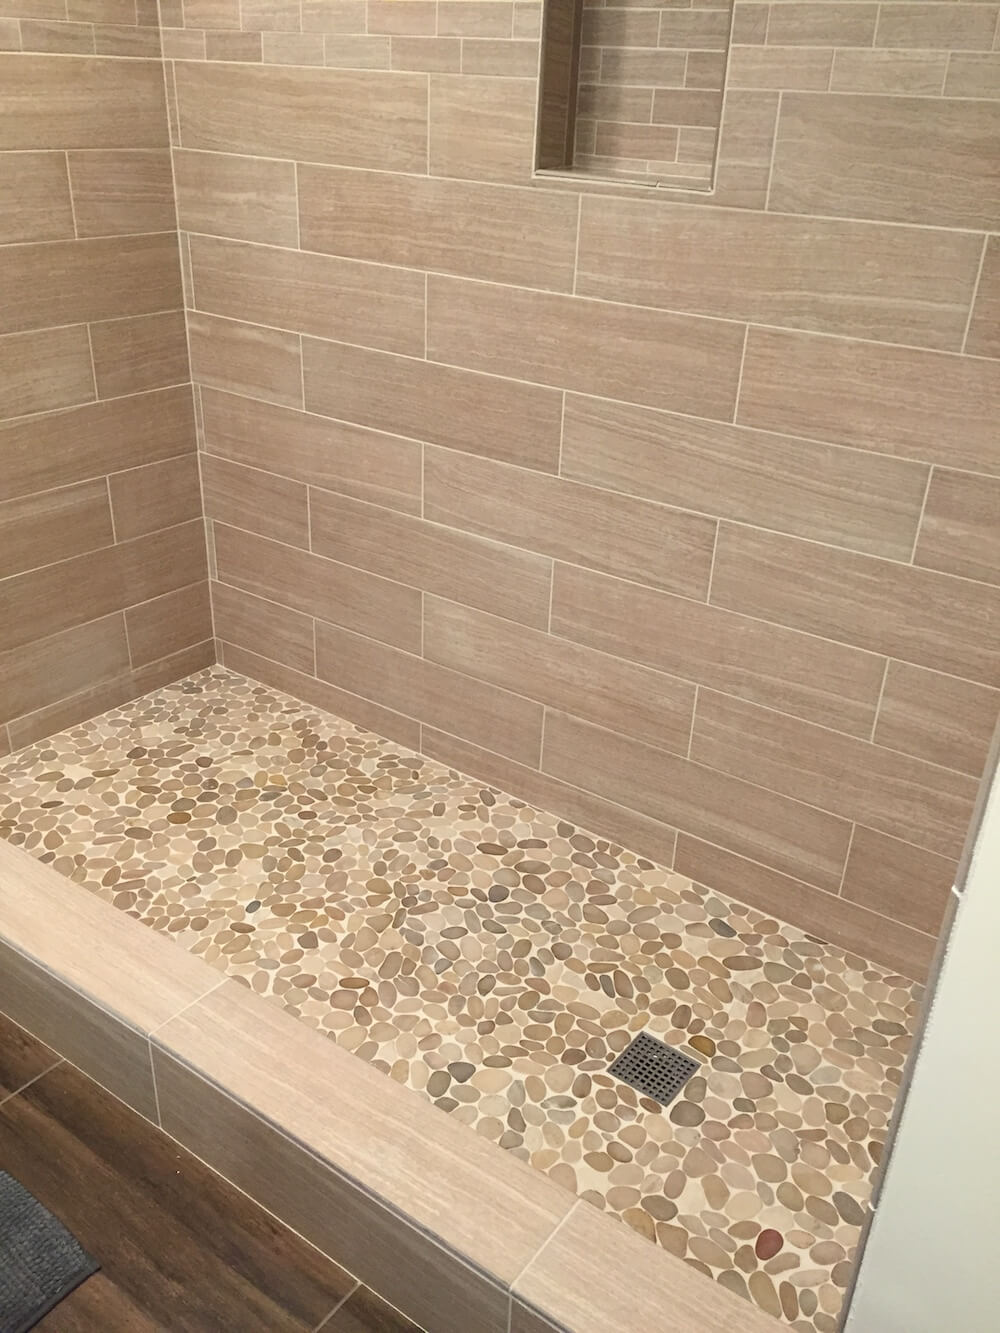 Cost of new bathroom installation - Showing Tiling Cost Factors